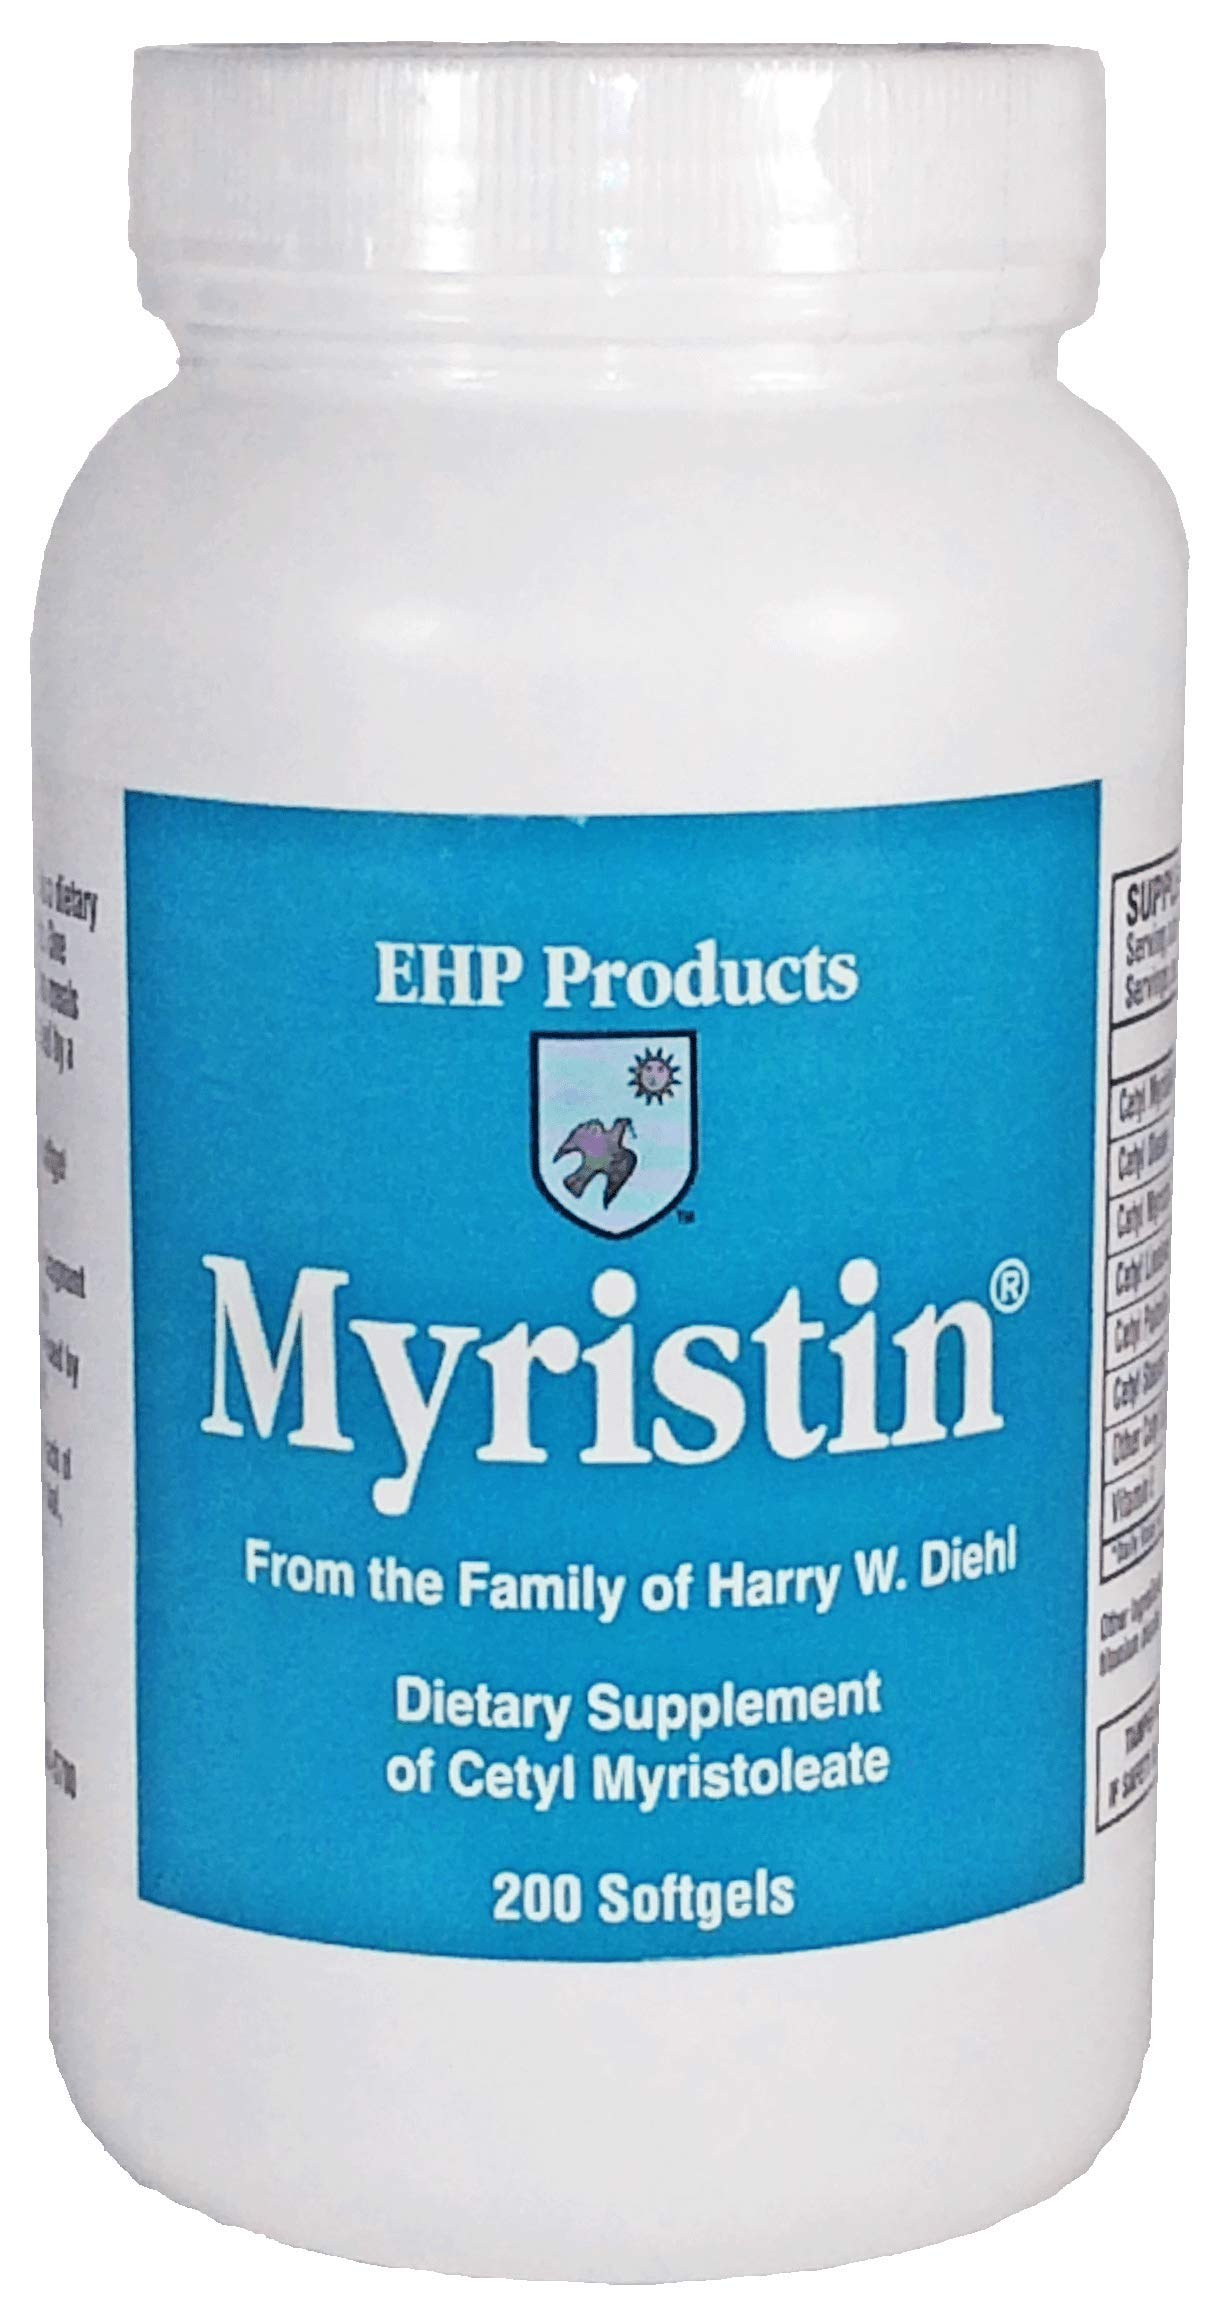 EHP Products Myristin® Cetyl Myristoleate CMO Softgels (200 Count) - Highest Concentration of Cetyl Myristoleate (260 mg per softgel)